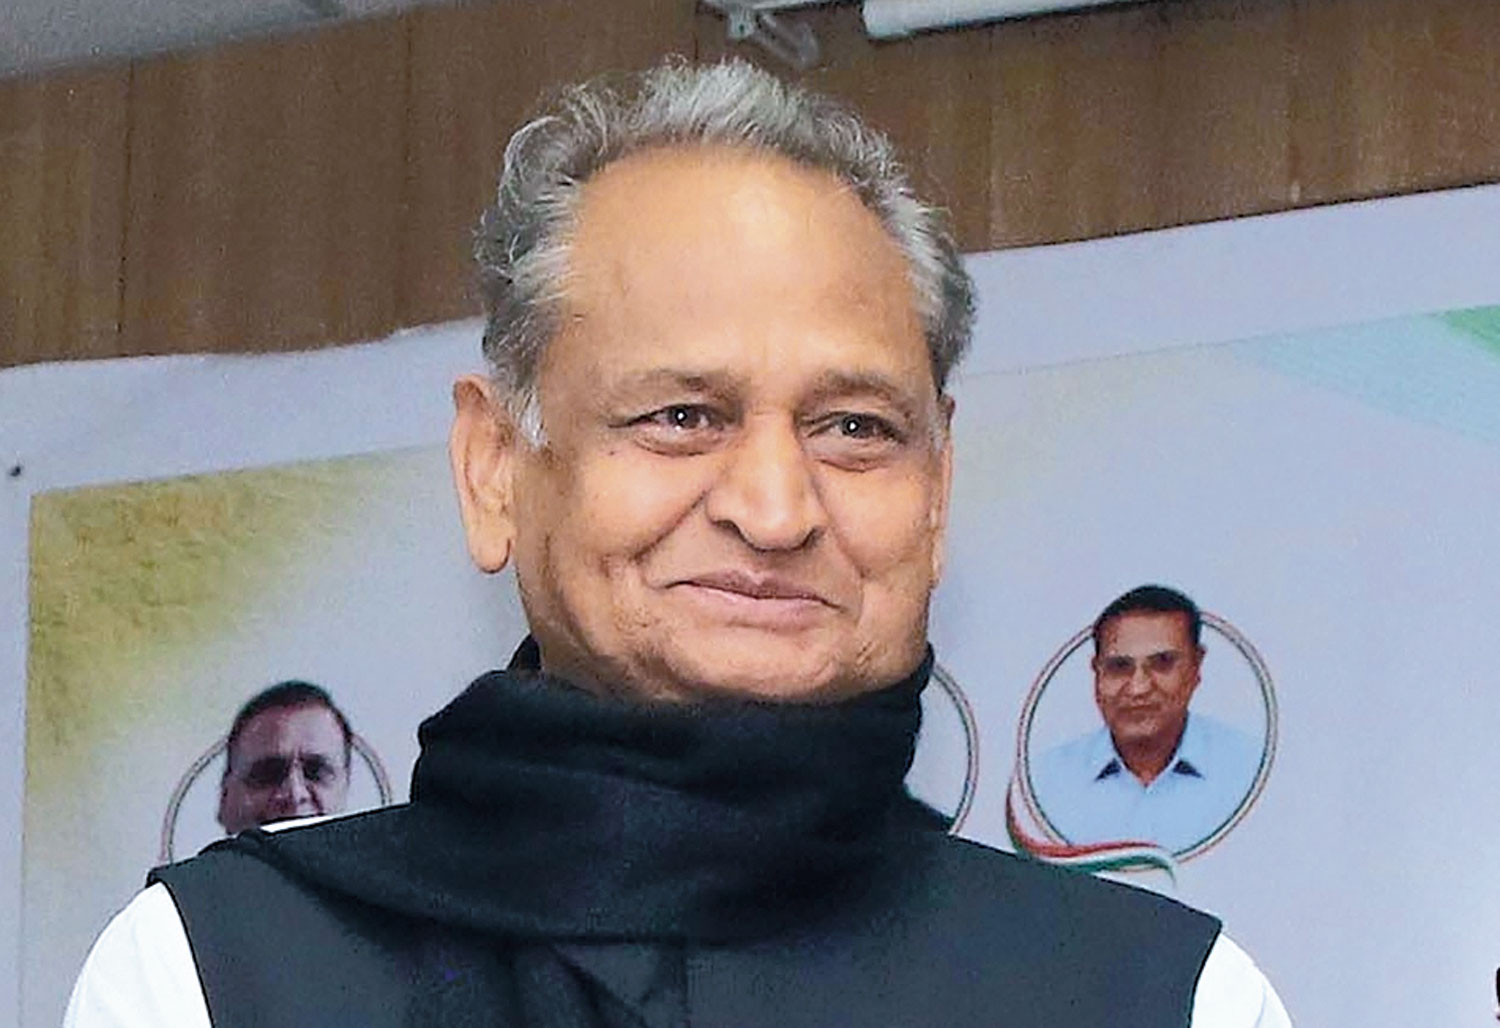 Amid speculation over rift in Rajasthan Congress, MLAs meet Ashok Gehlot to indicate support